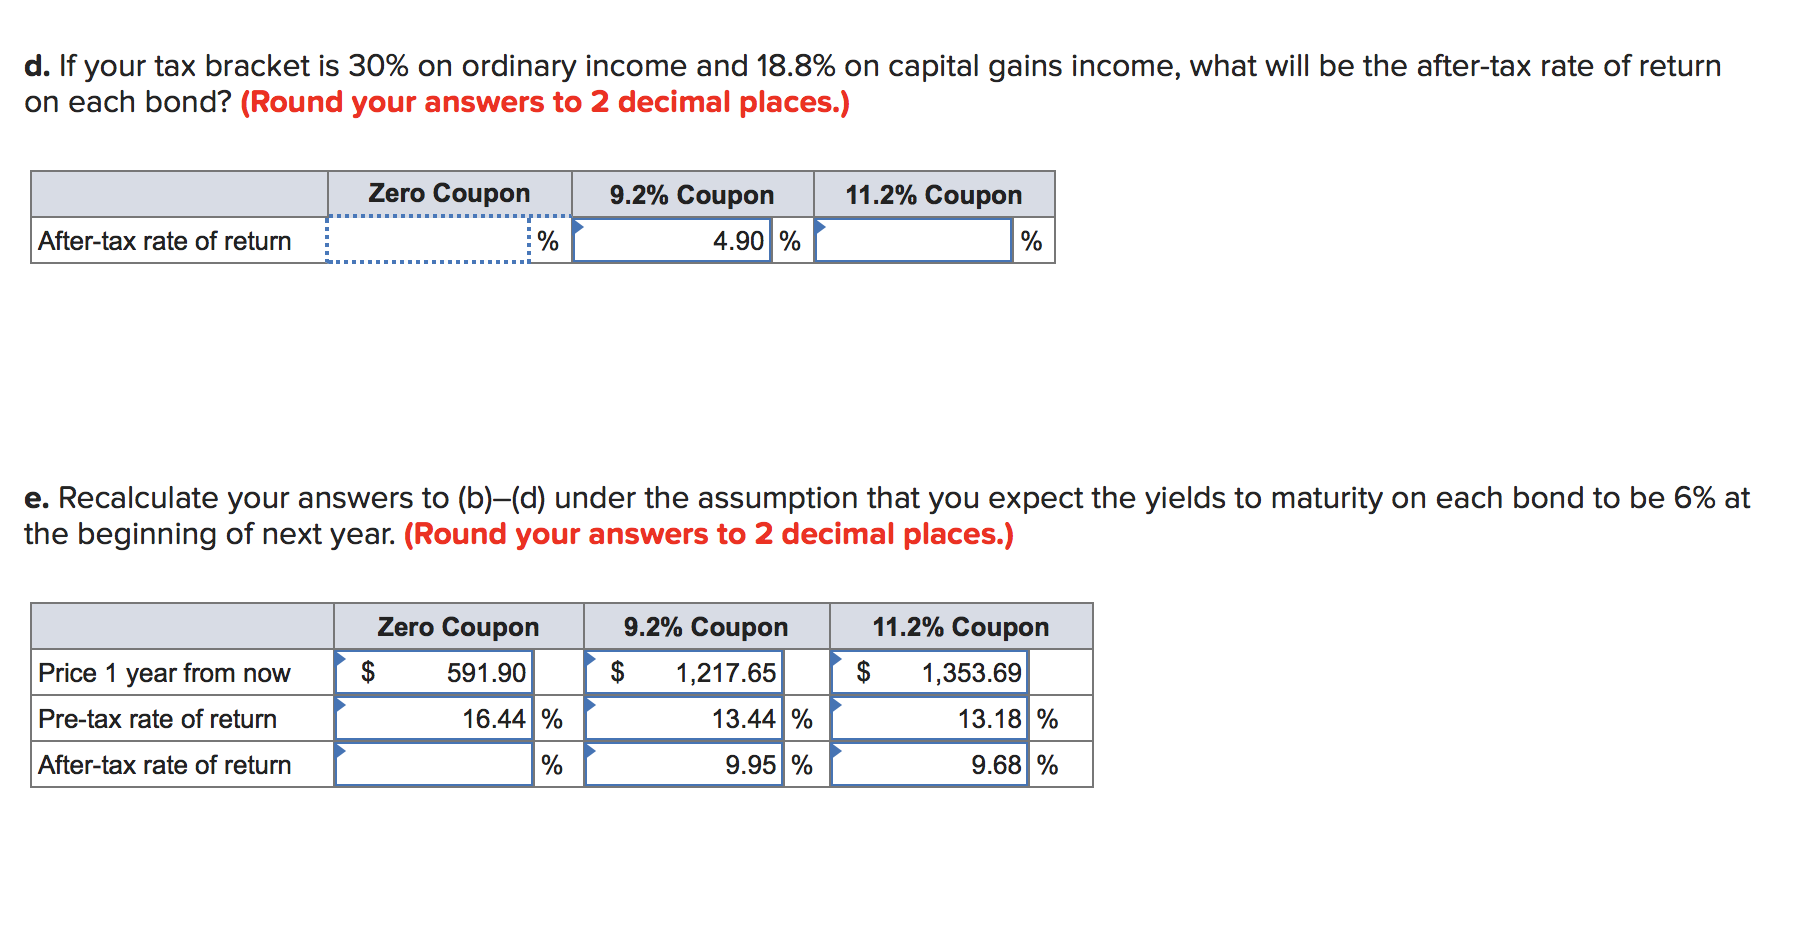 d. If your tax bracket is 30% on ordinary income and 18.8% on capital gains income, what will be the after-tax rate of return